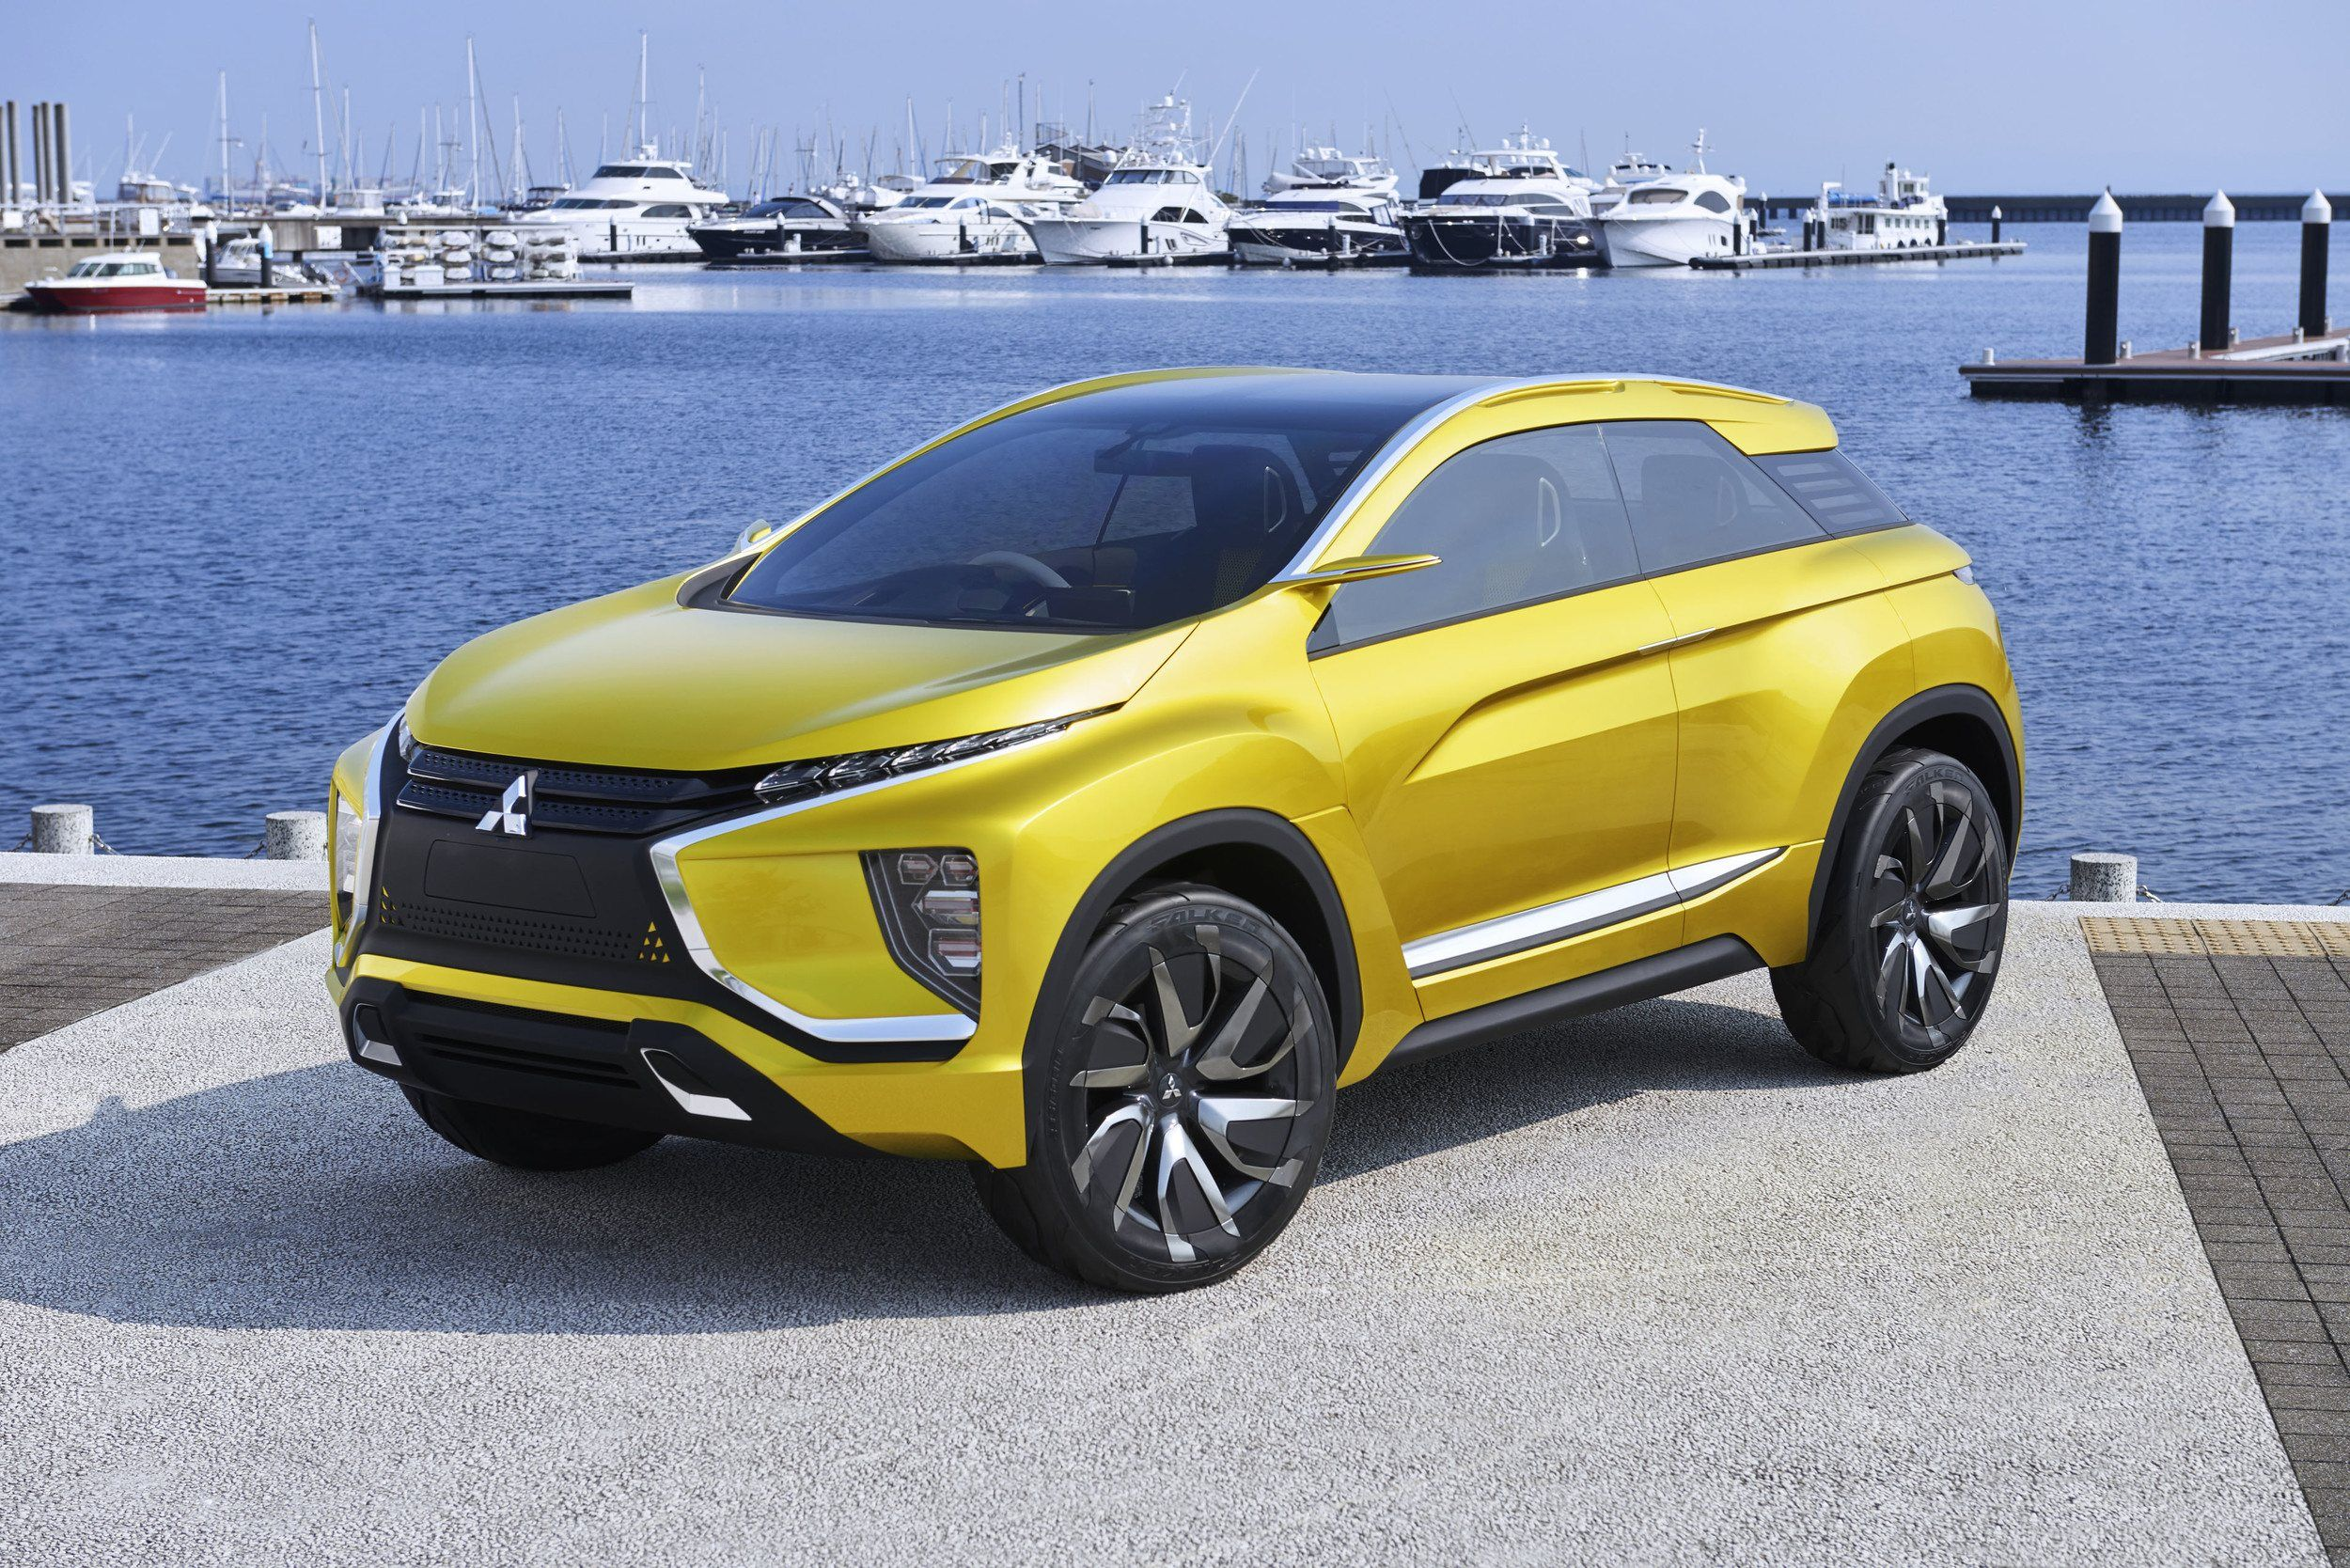 2021 Mitsubishi Outlander Spotted In Europe Wraps New Platform In Concept Inspired Body In 2020 Mitsubishi Outlander Mitsubishi Outlander Sport Outlander